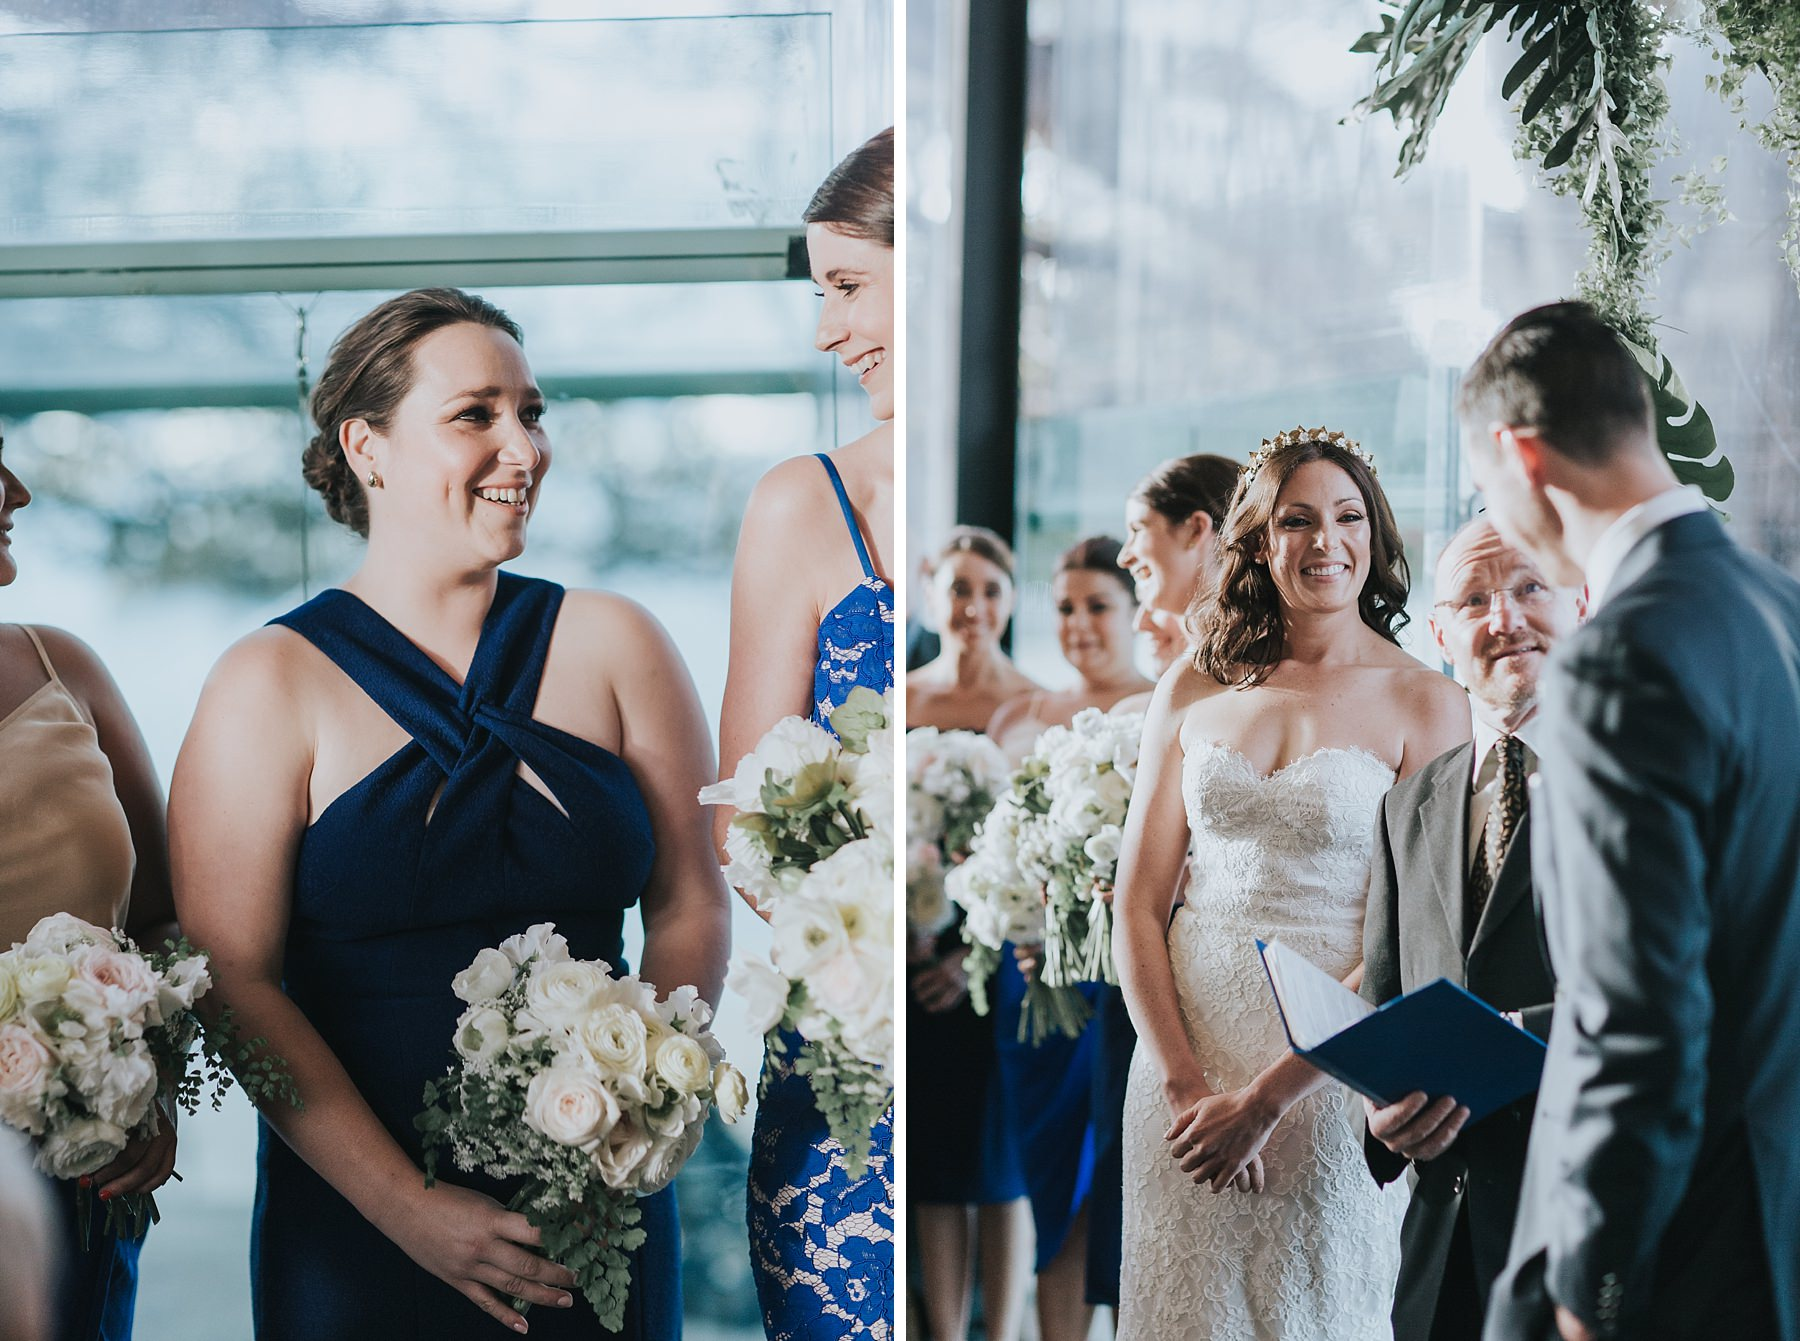 quiet wedding ceremony moments documented